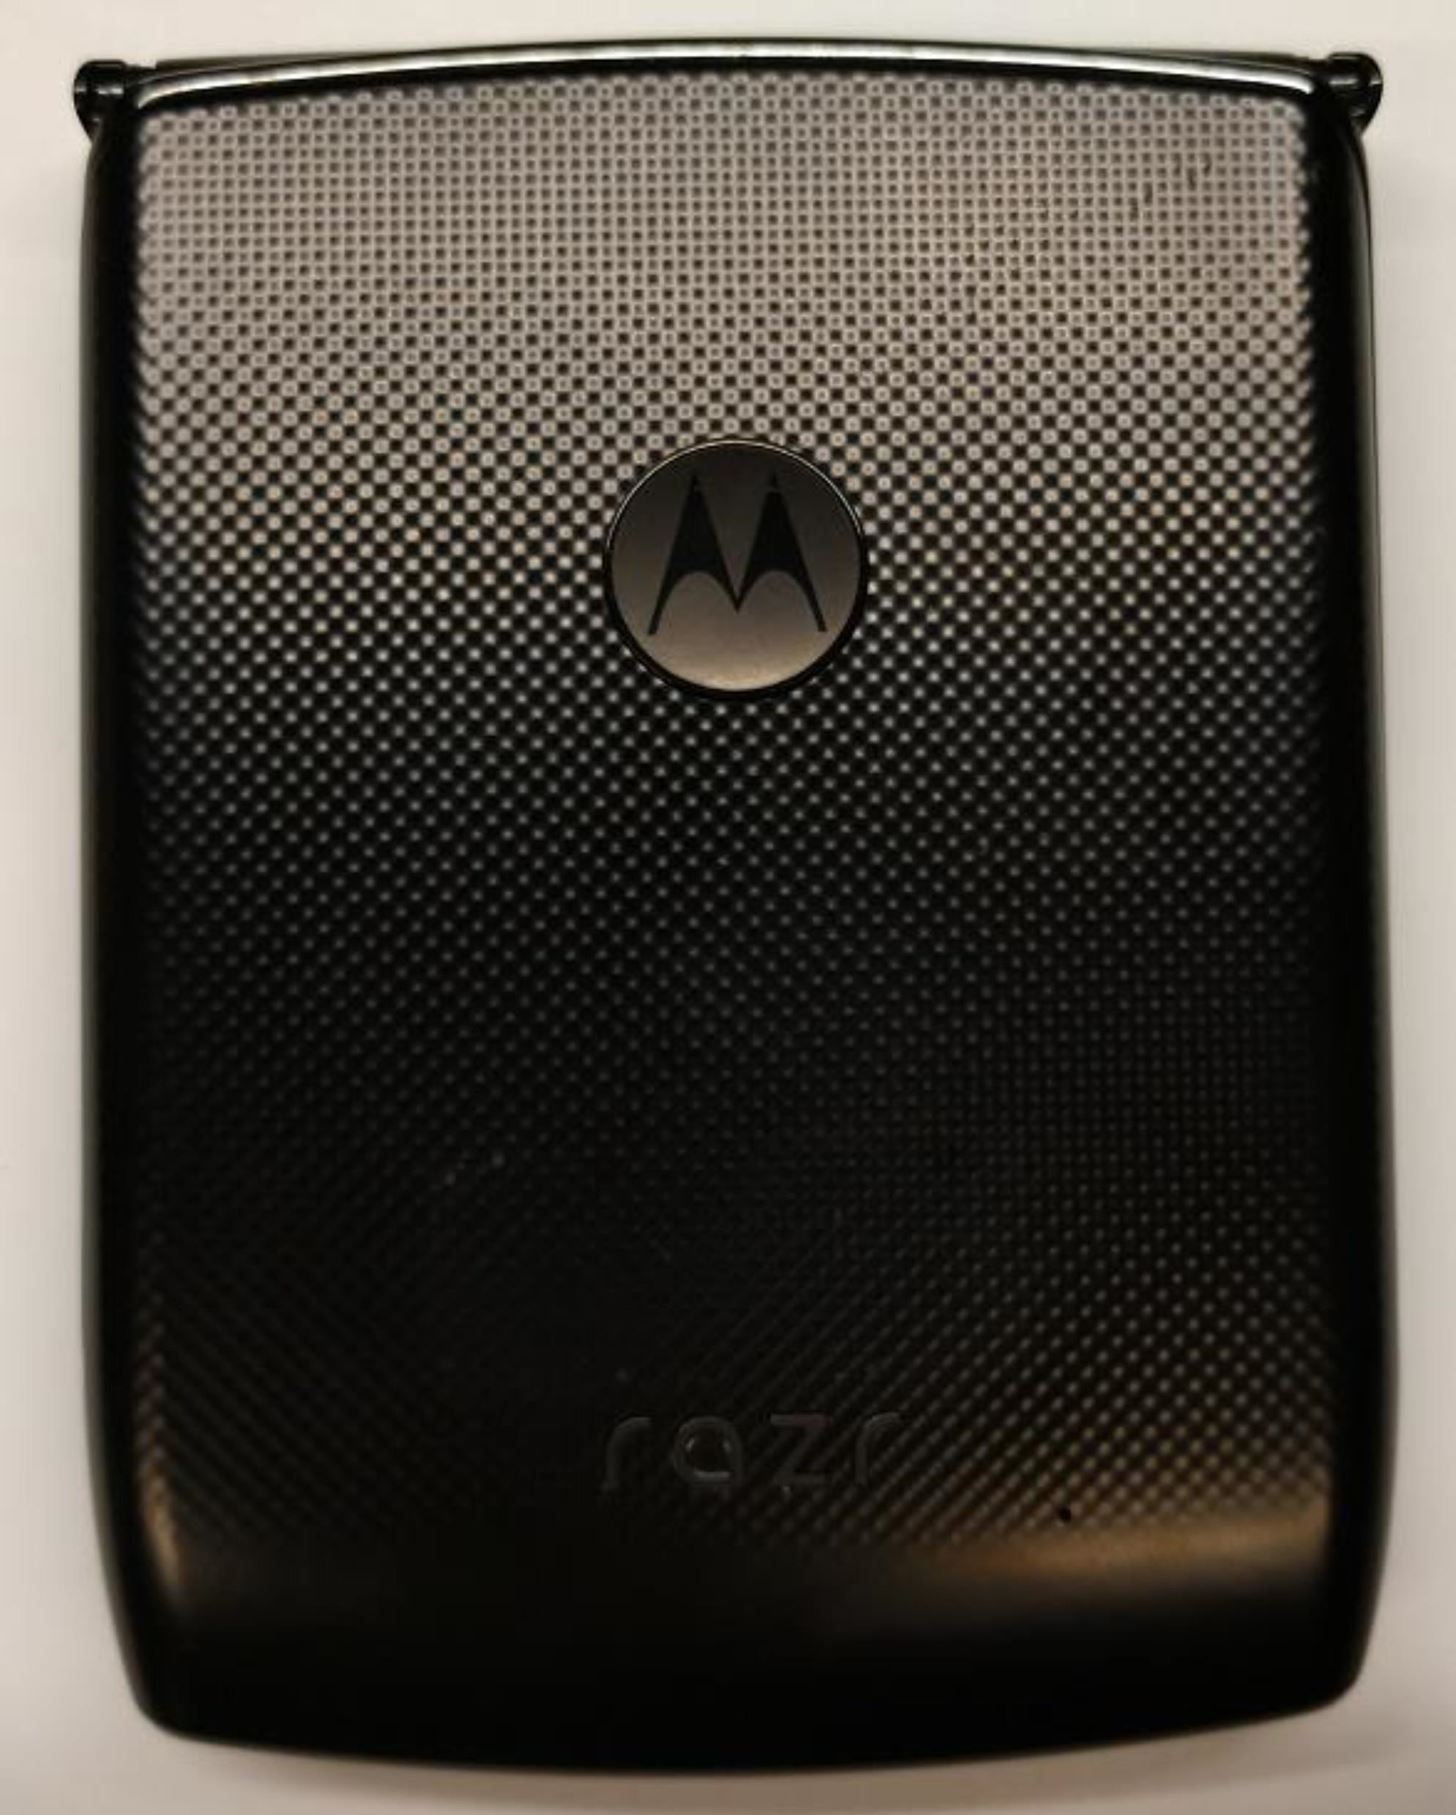 New Photos of the 2019 Motorola RAZR Surface in FCC Filing, Reveal Dimensions, Notch & Biometrics